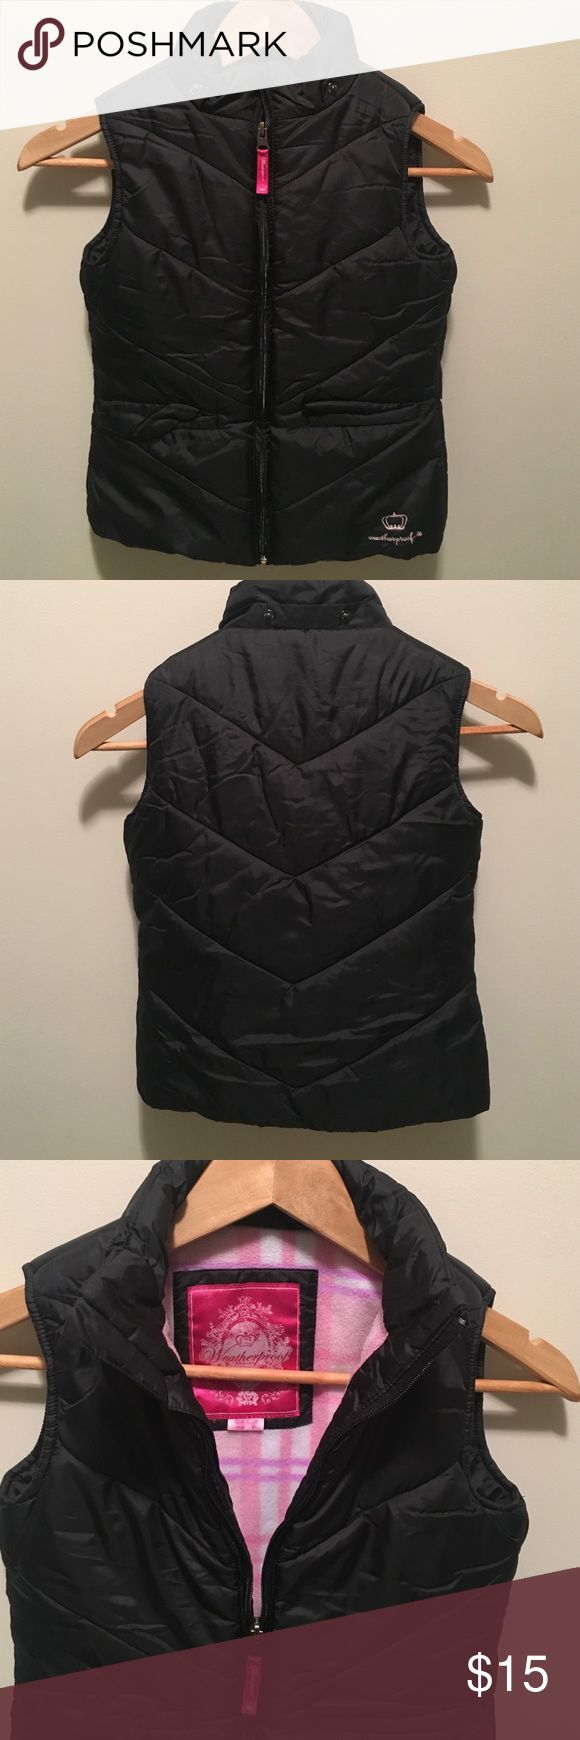 Girls puffer vest Used, good condition girls puffer vest. Size 6x has 2 front pockets Jackets & Coats Vests